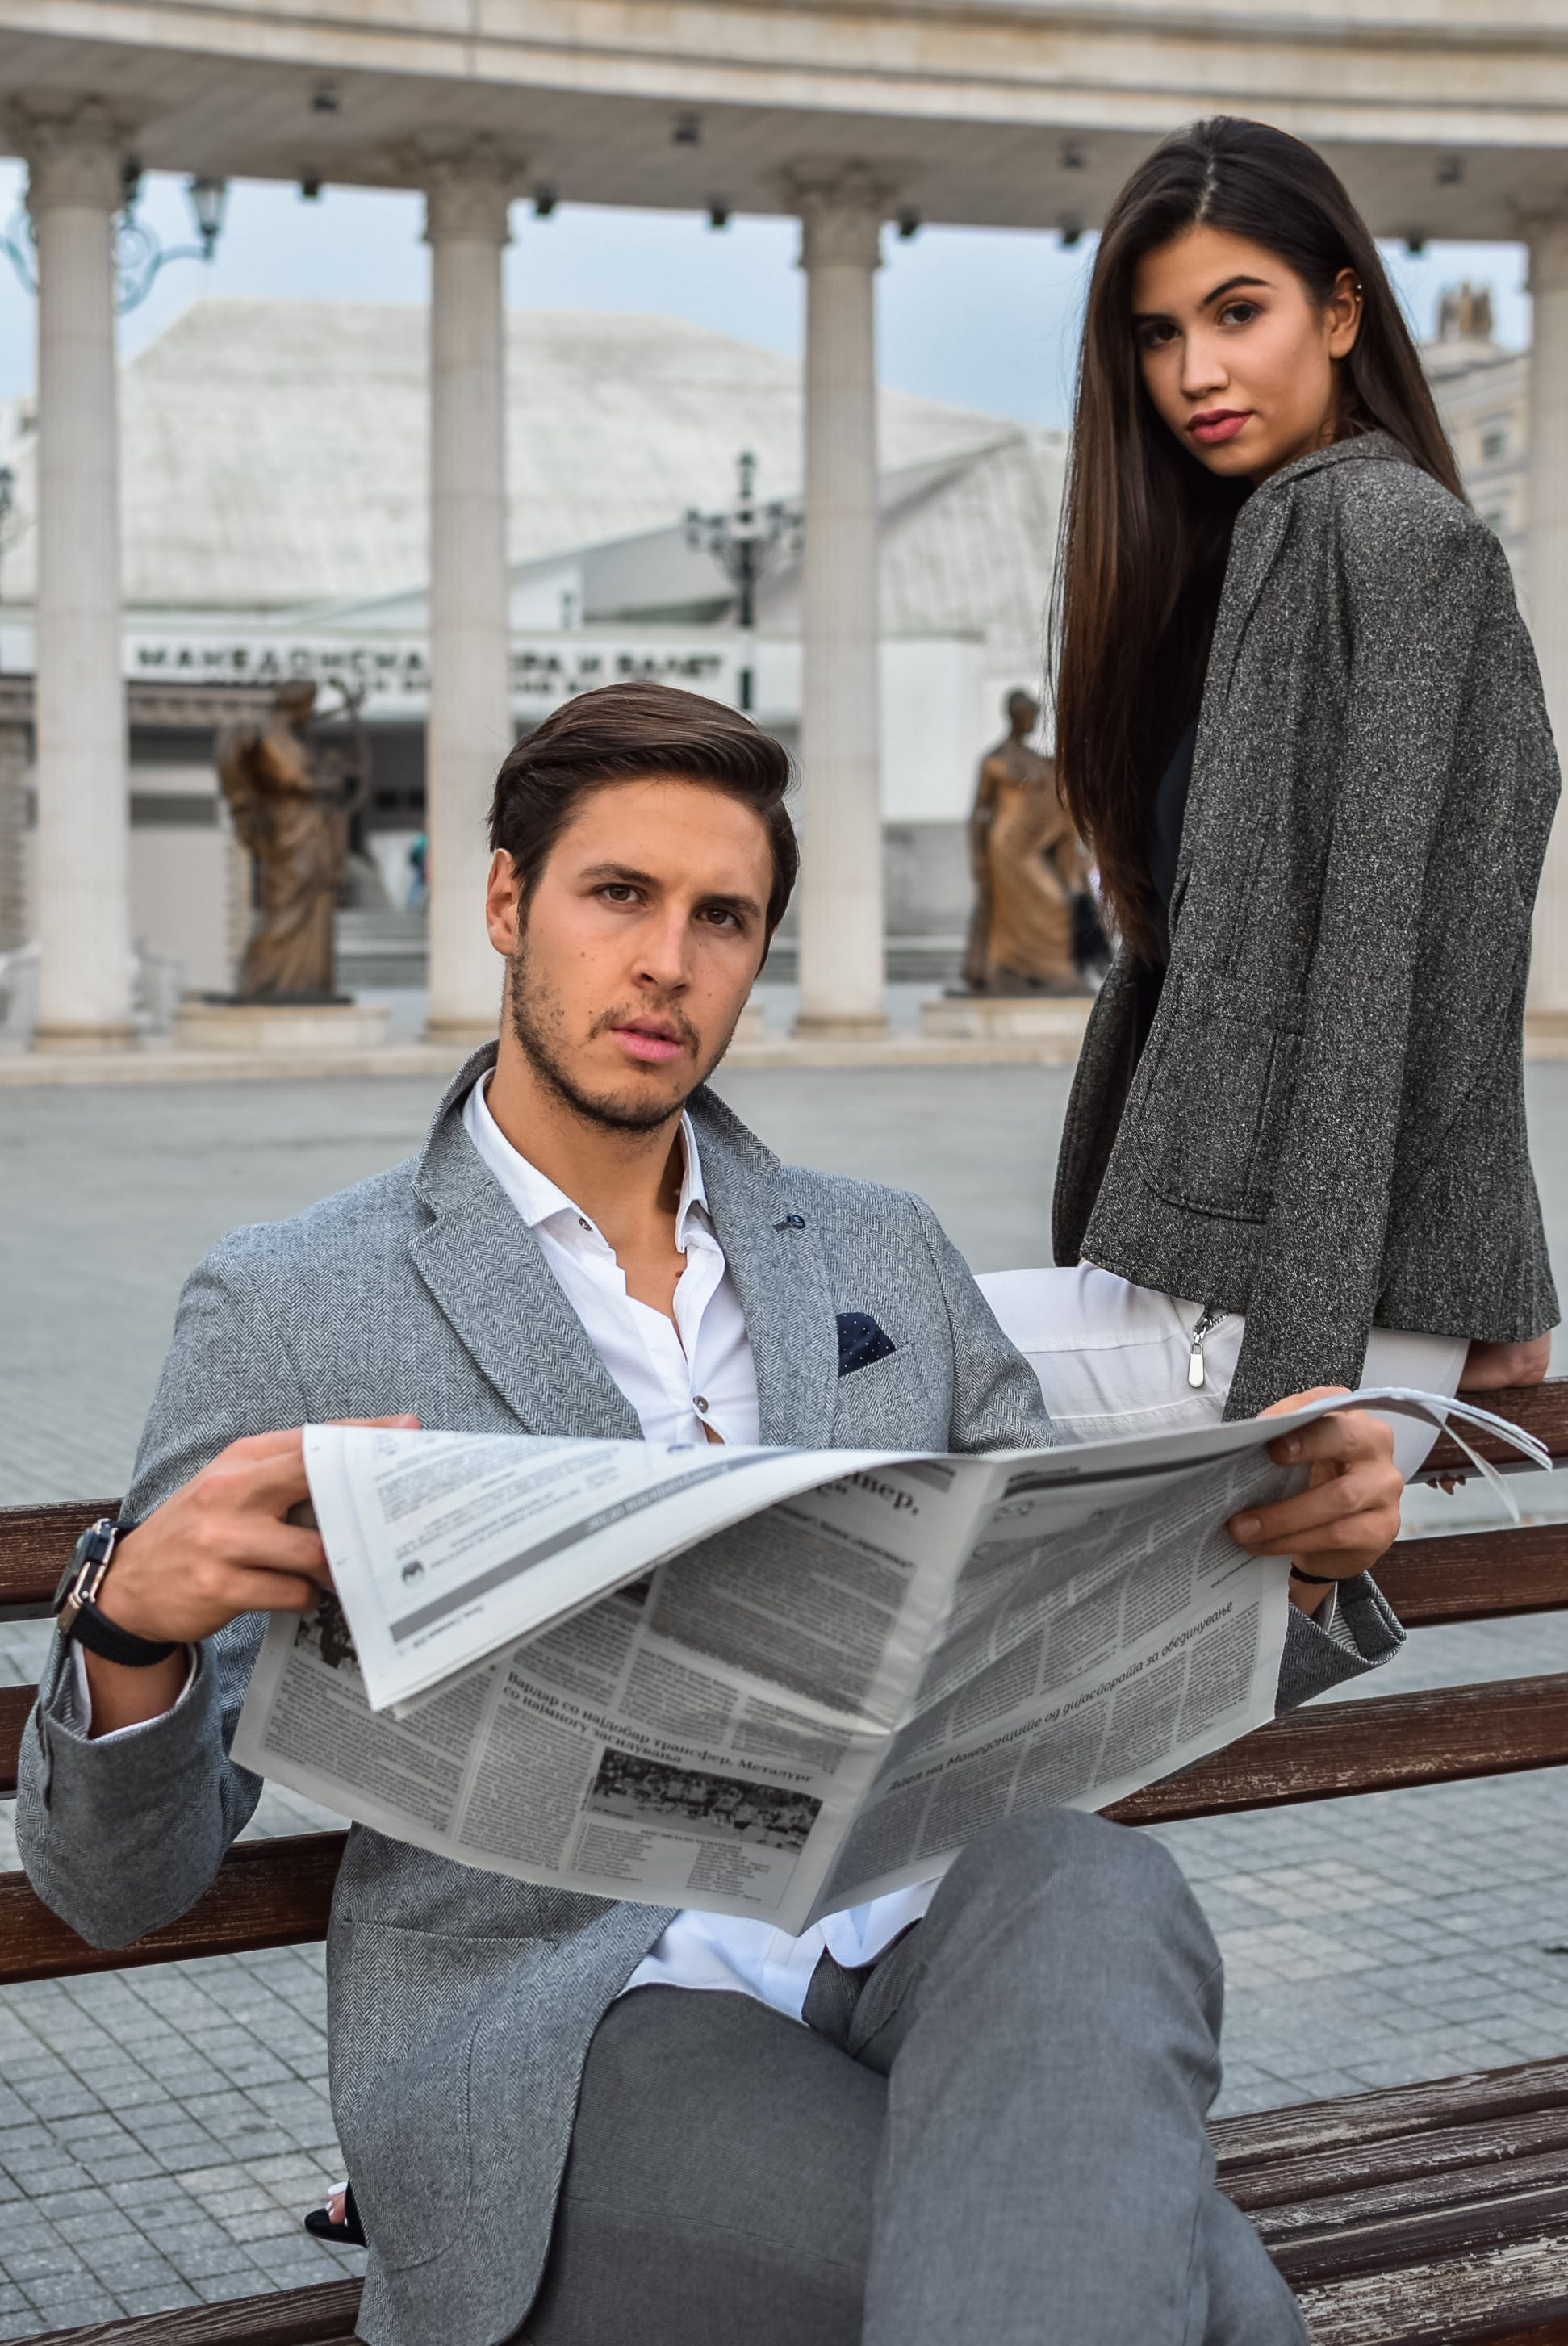 Man Sitting On Bench While Holding Newspaper